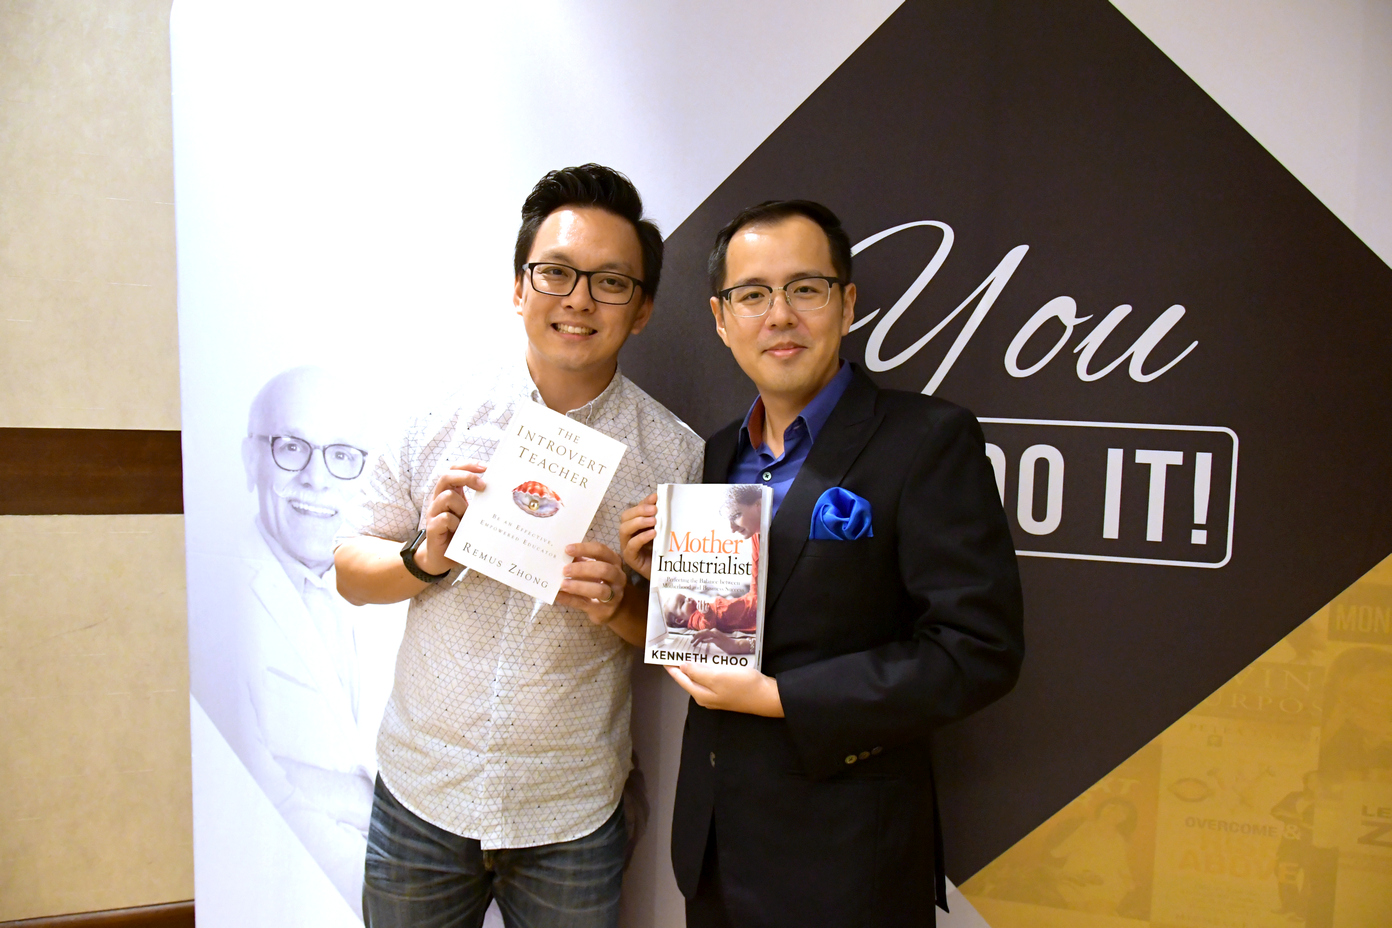 Kenneth Choo , Author of  Mother Industrialist